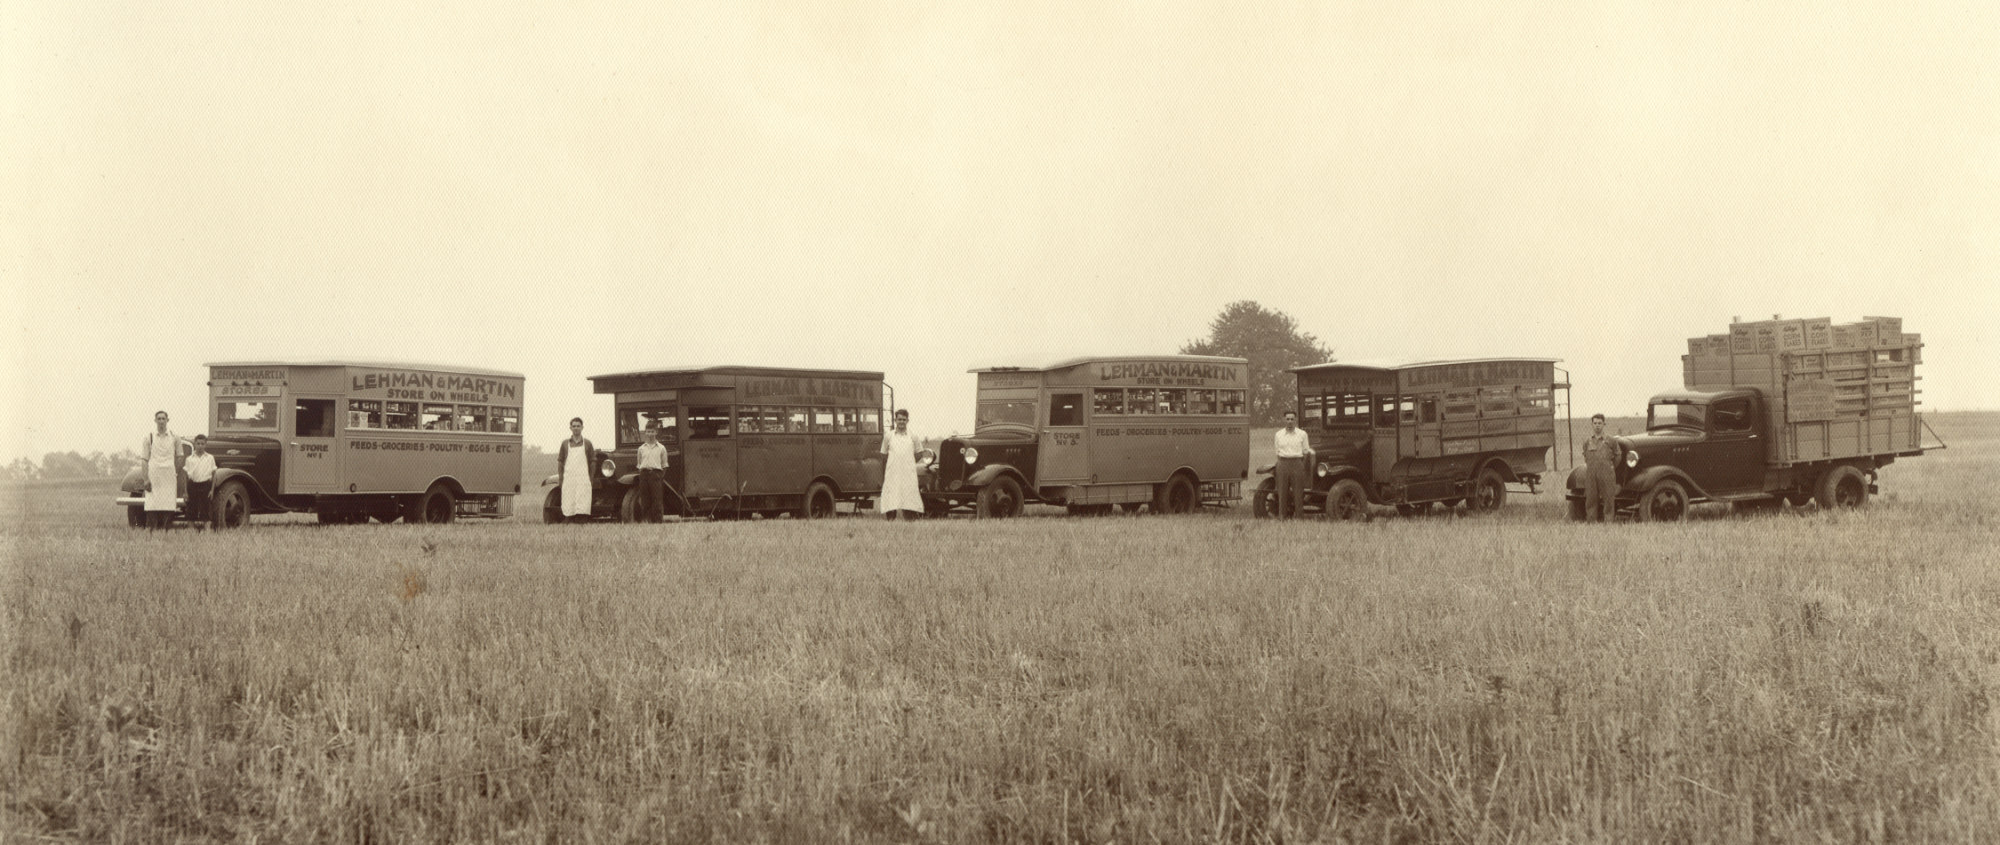 Black and white photo of Lehman and Martin Store on Wheels trucks